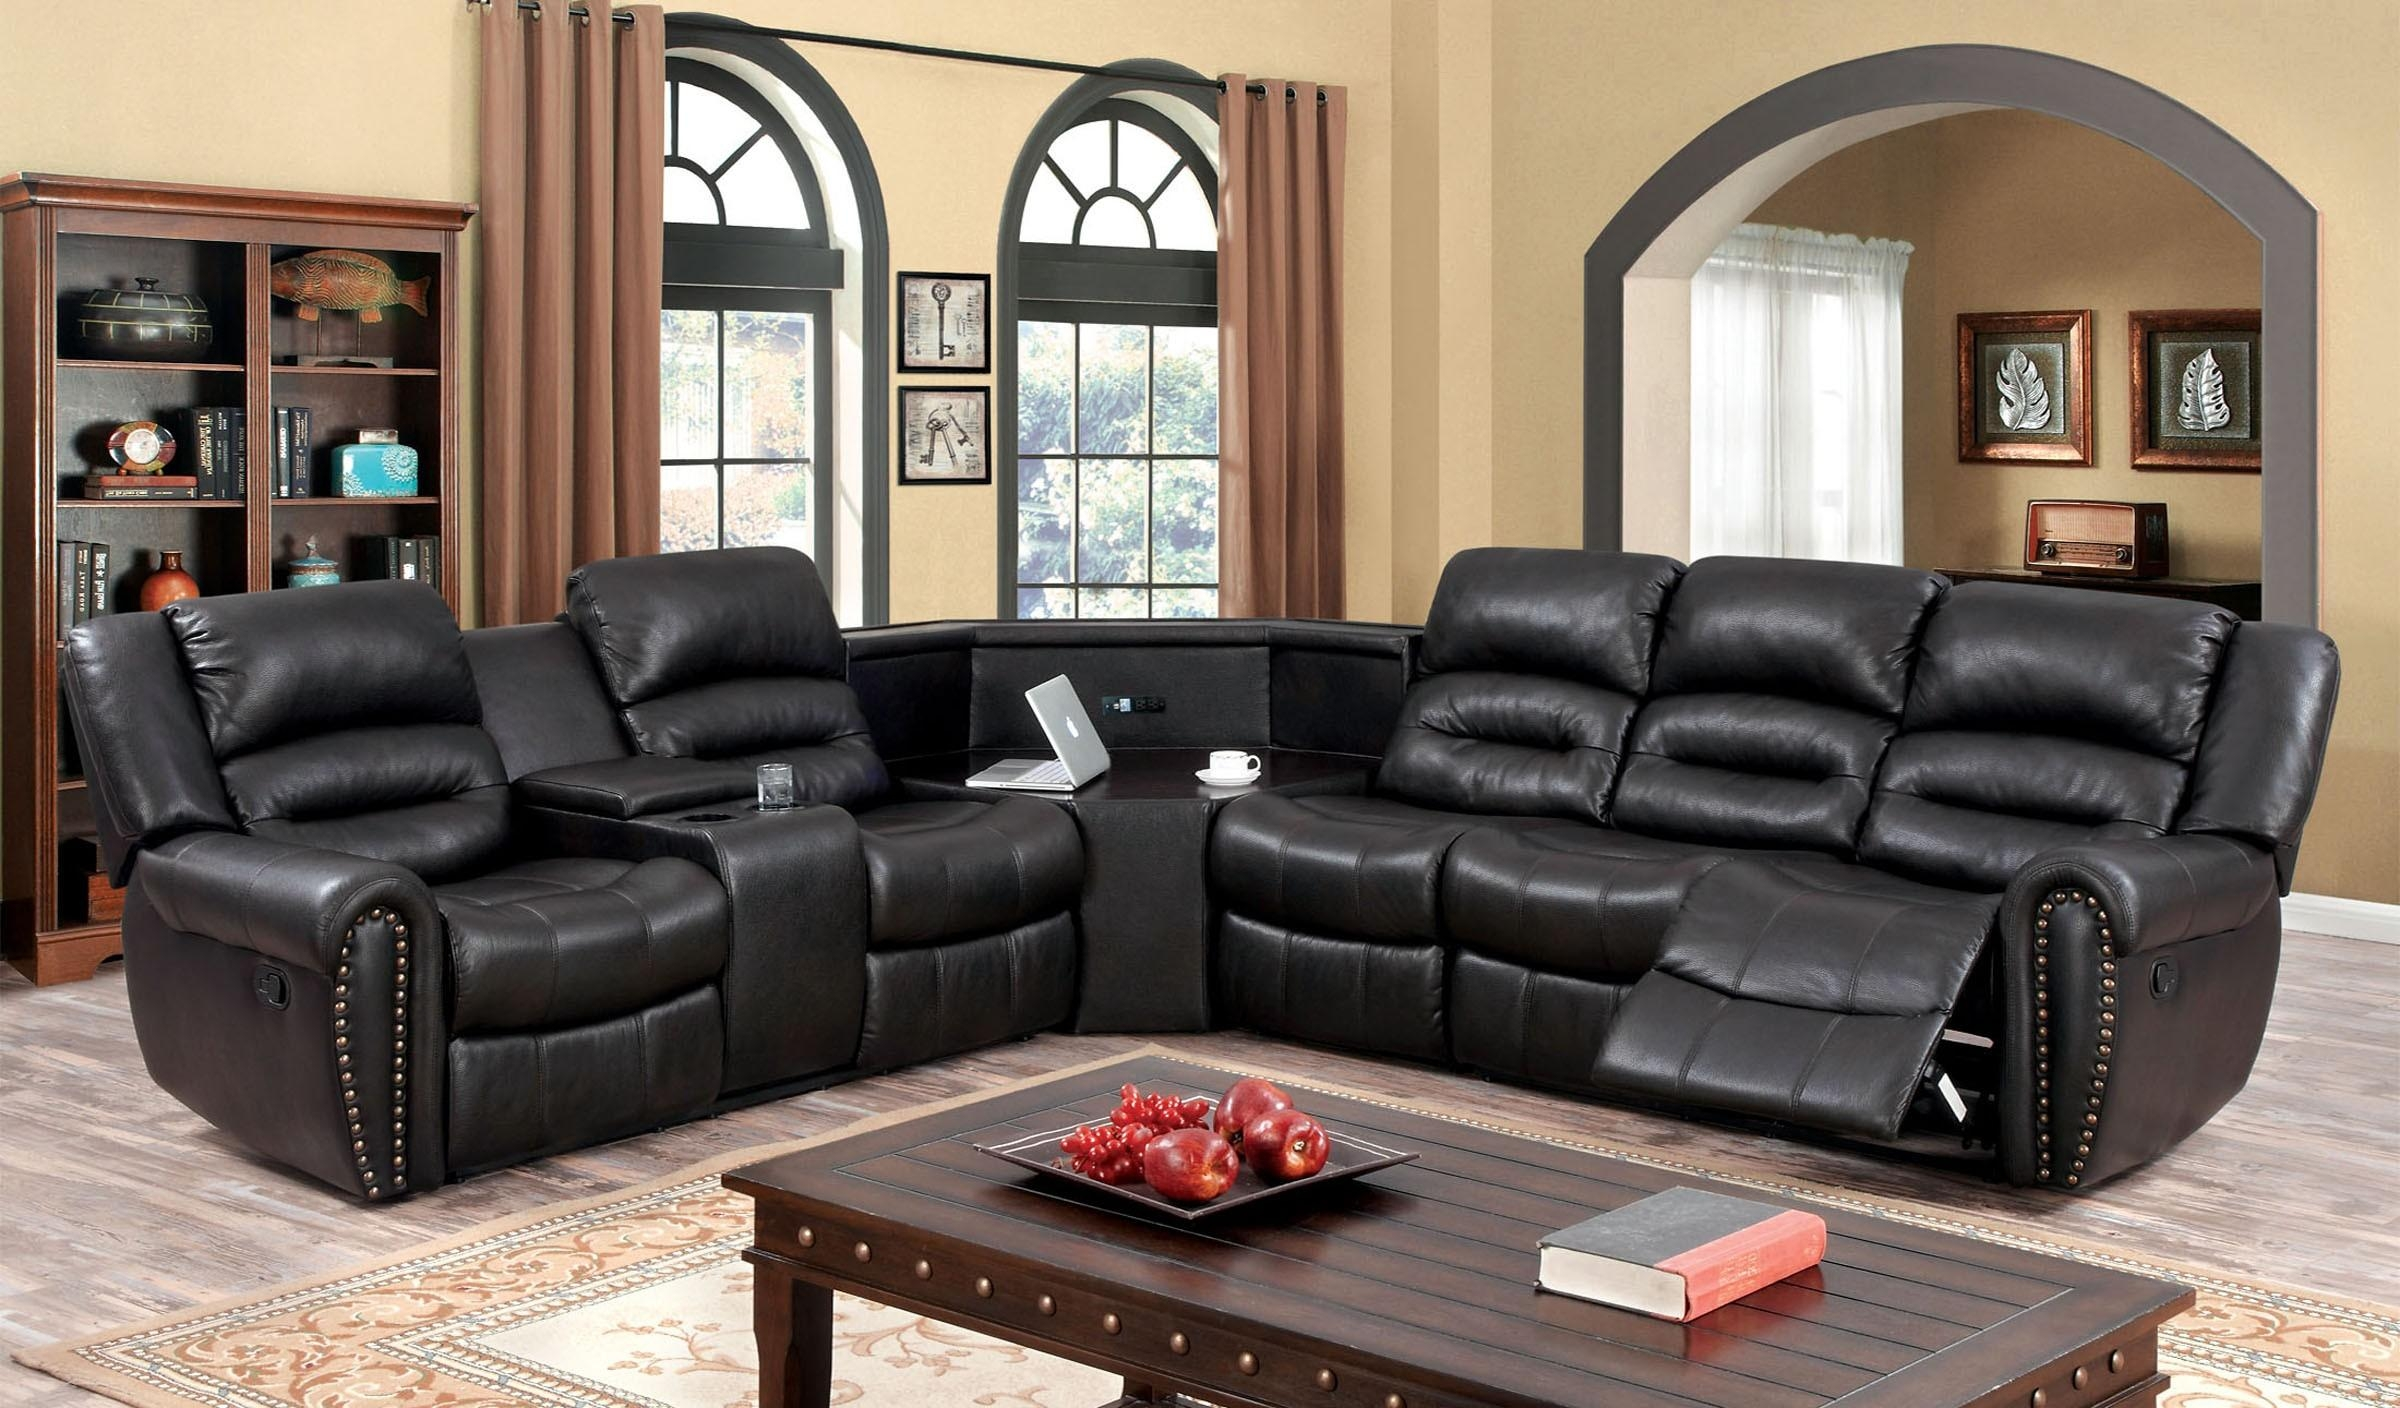 Sofas Center : Brown Leather Sectional Sofa With Chaise Sofas In Throughout Sectional With Cup Holders (View 16 of 20)